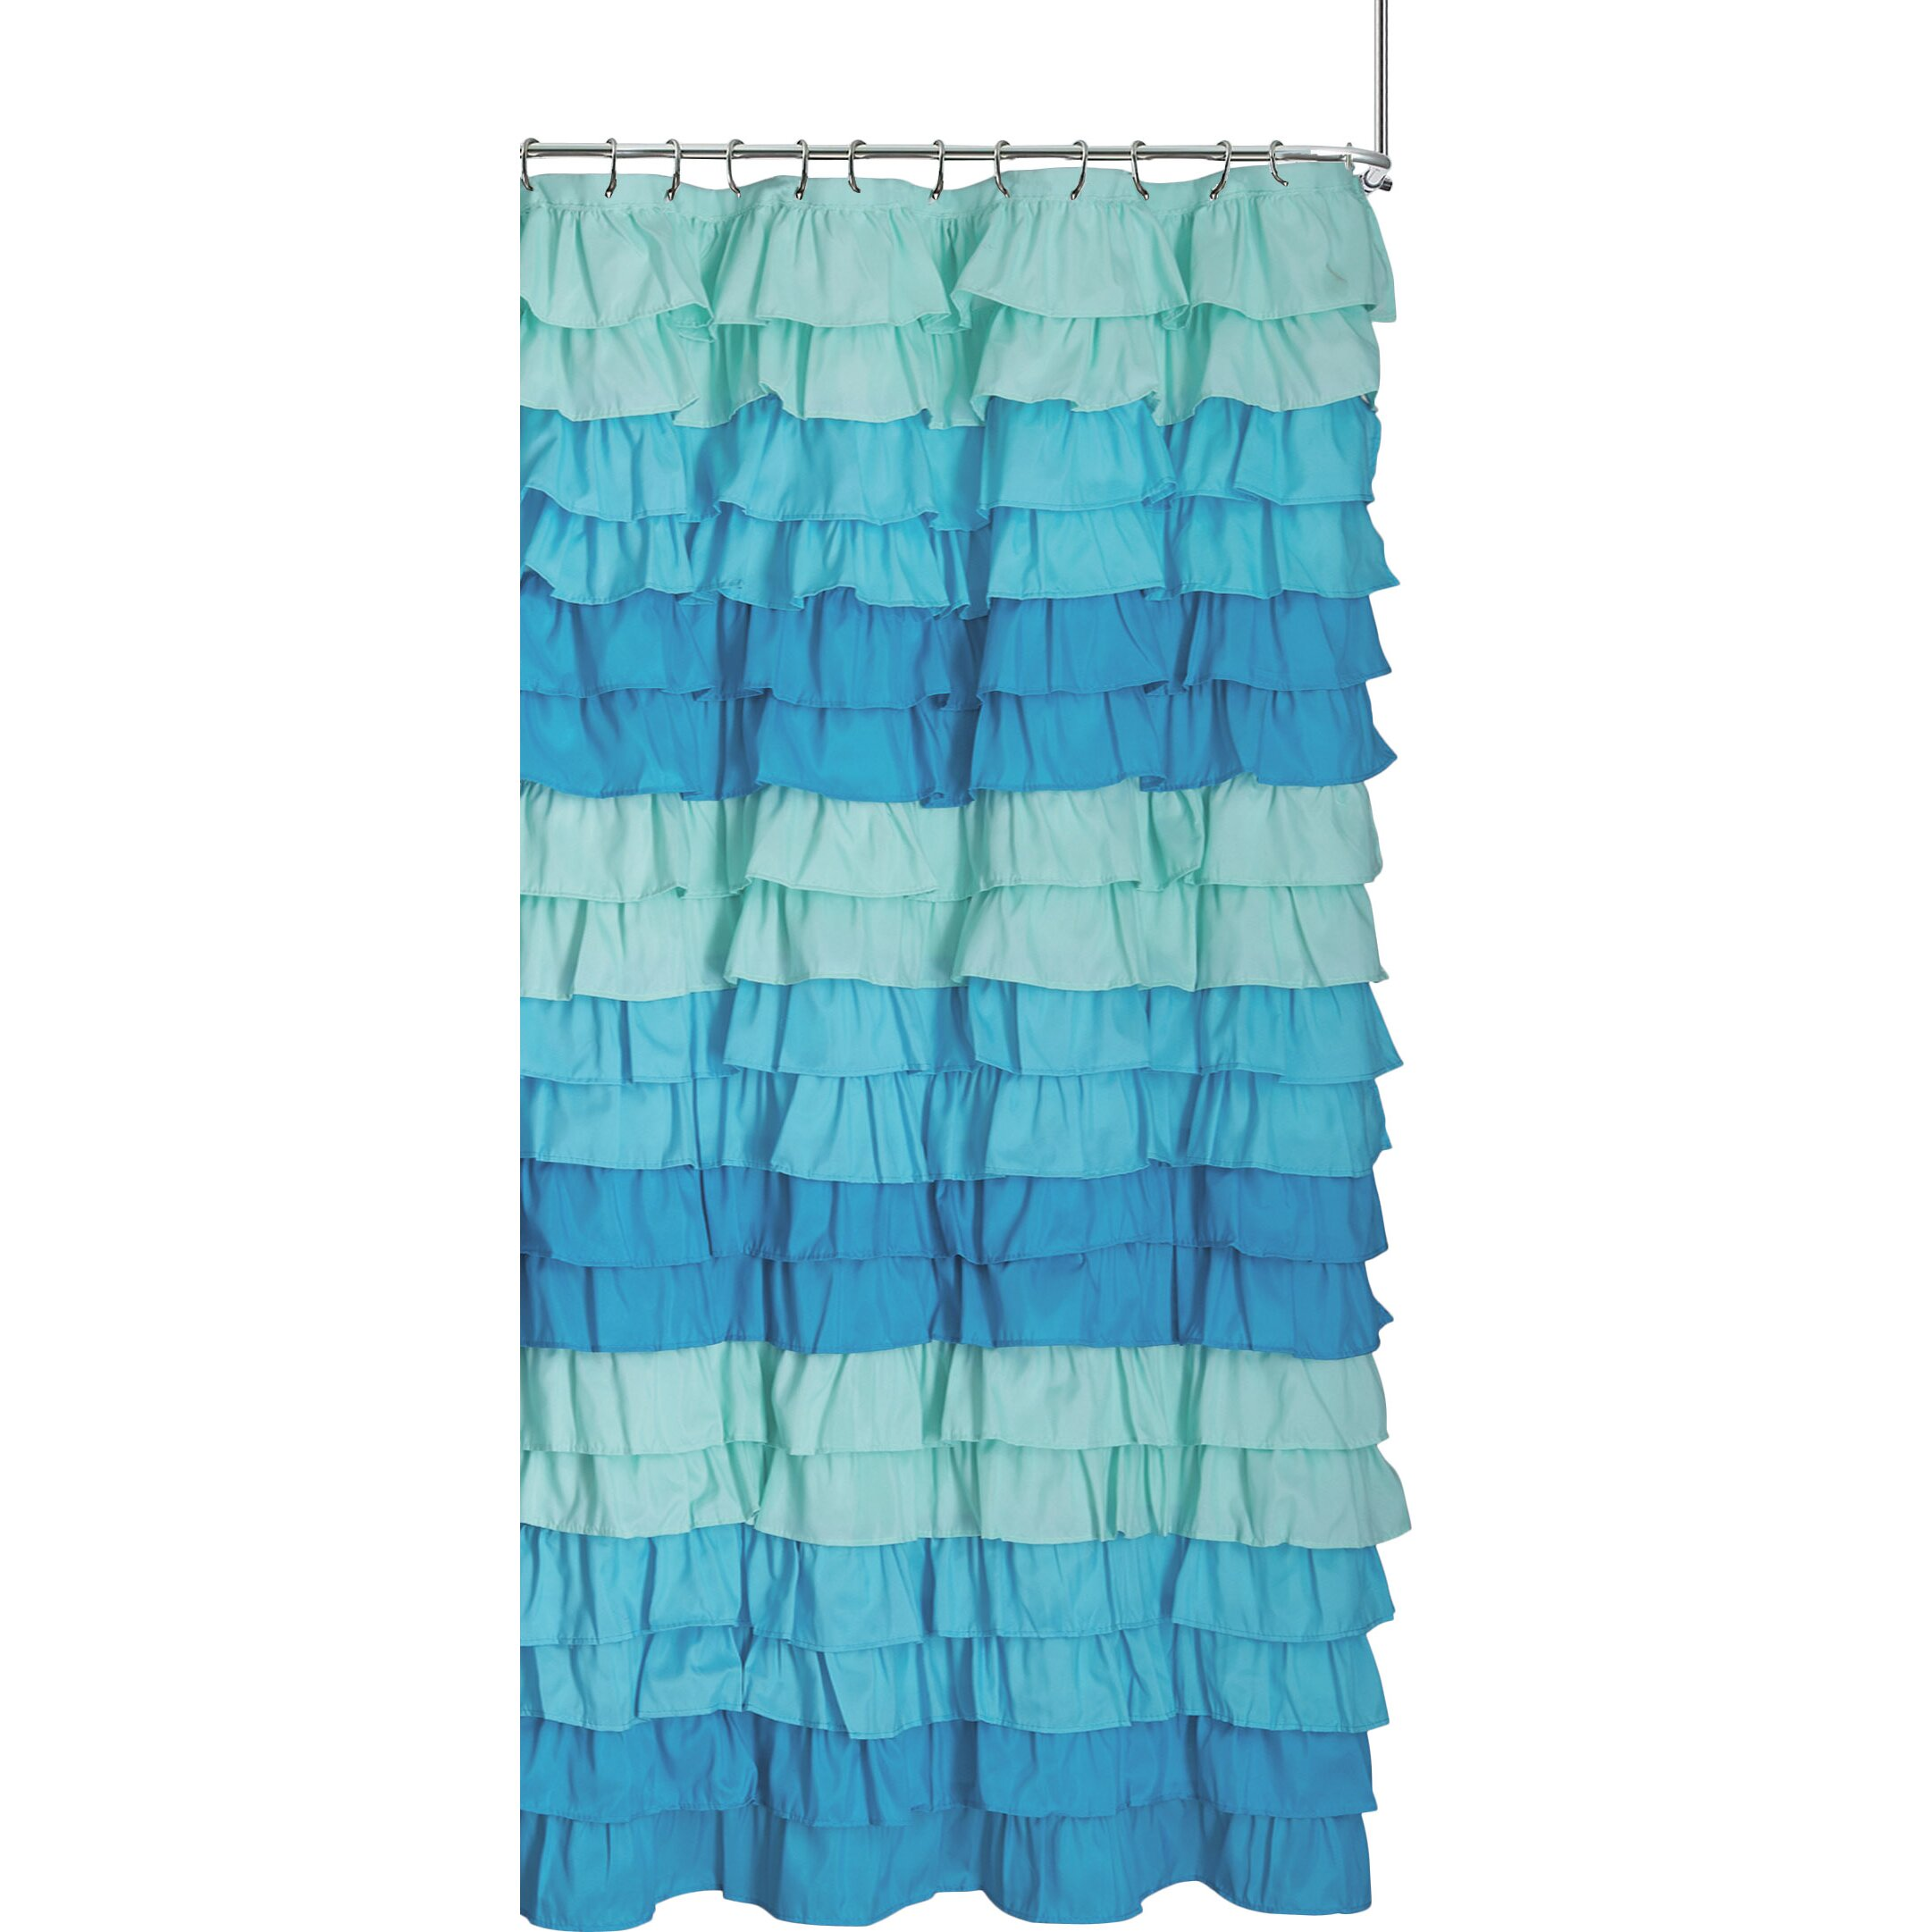 Blue ruffled shower curtains - Dainty Home Venezia Ruffle Shower Curtain Pirate Shower Curtain